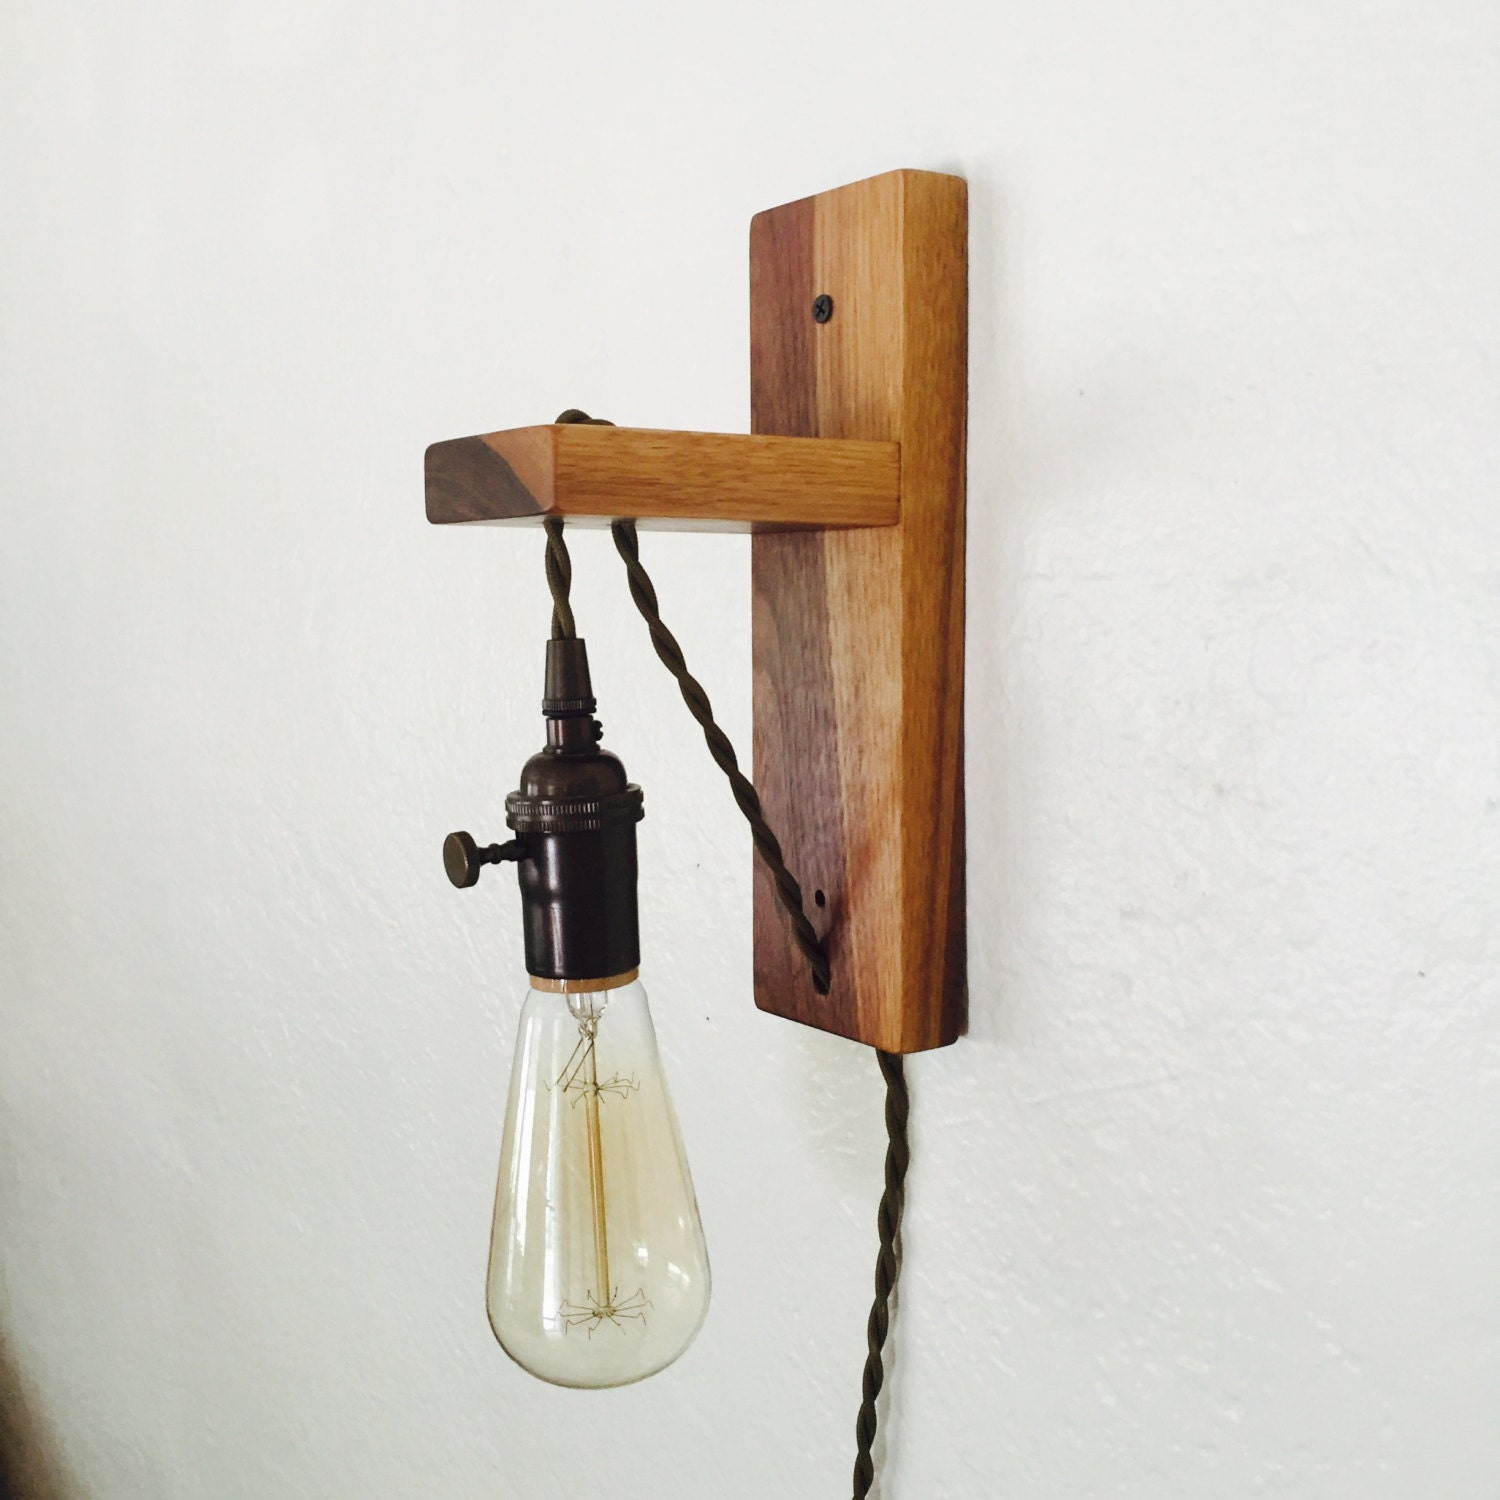 Wall Sconces With Plug In Cords : Walnut plug in wall sconce-Plug in pendant edison